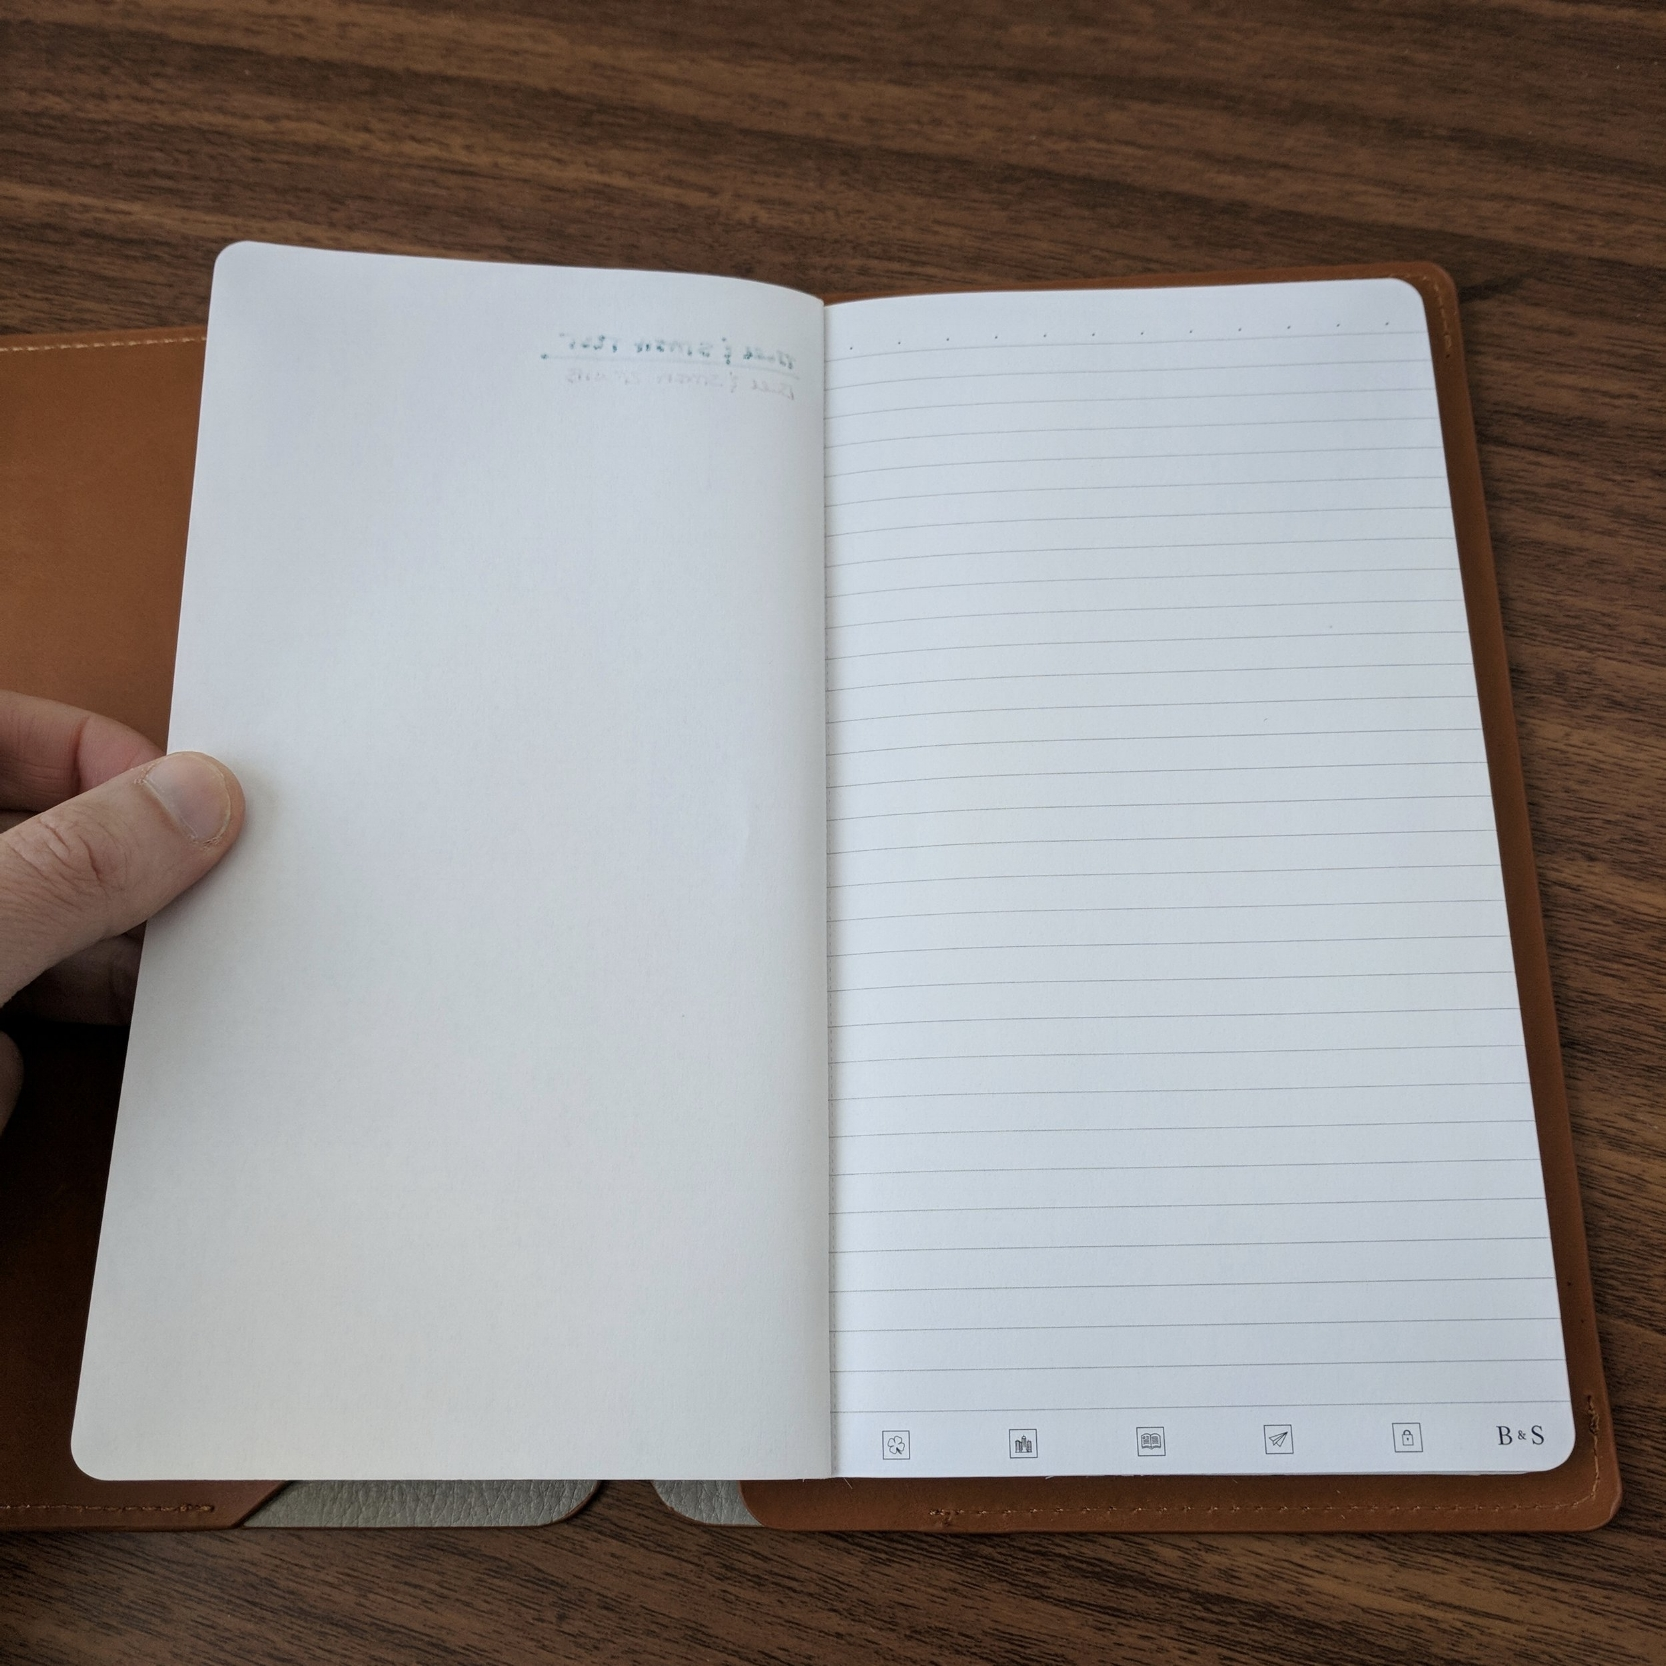 """The proprietary Bull & Stash refill hasn't changed. The regular 60lb paper is not the most fountain pen friendly, and there will be some feathering and bleedthrough. That said, you're not meant to write on both sides of the page. It's more of a """"notepad"""" setup, where each page is perforated and can be torn out. Bull & Stash separately sells 110lb """"Fountain Pen"""" refills, which I've not had the opportunity to try."""